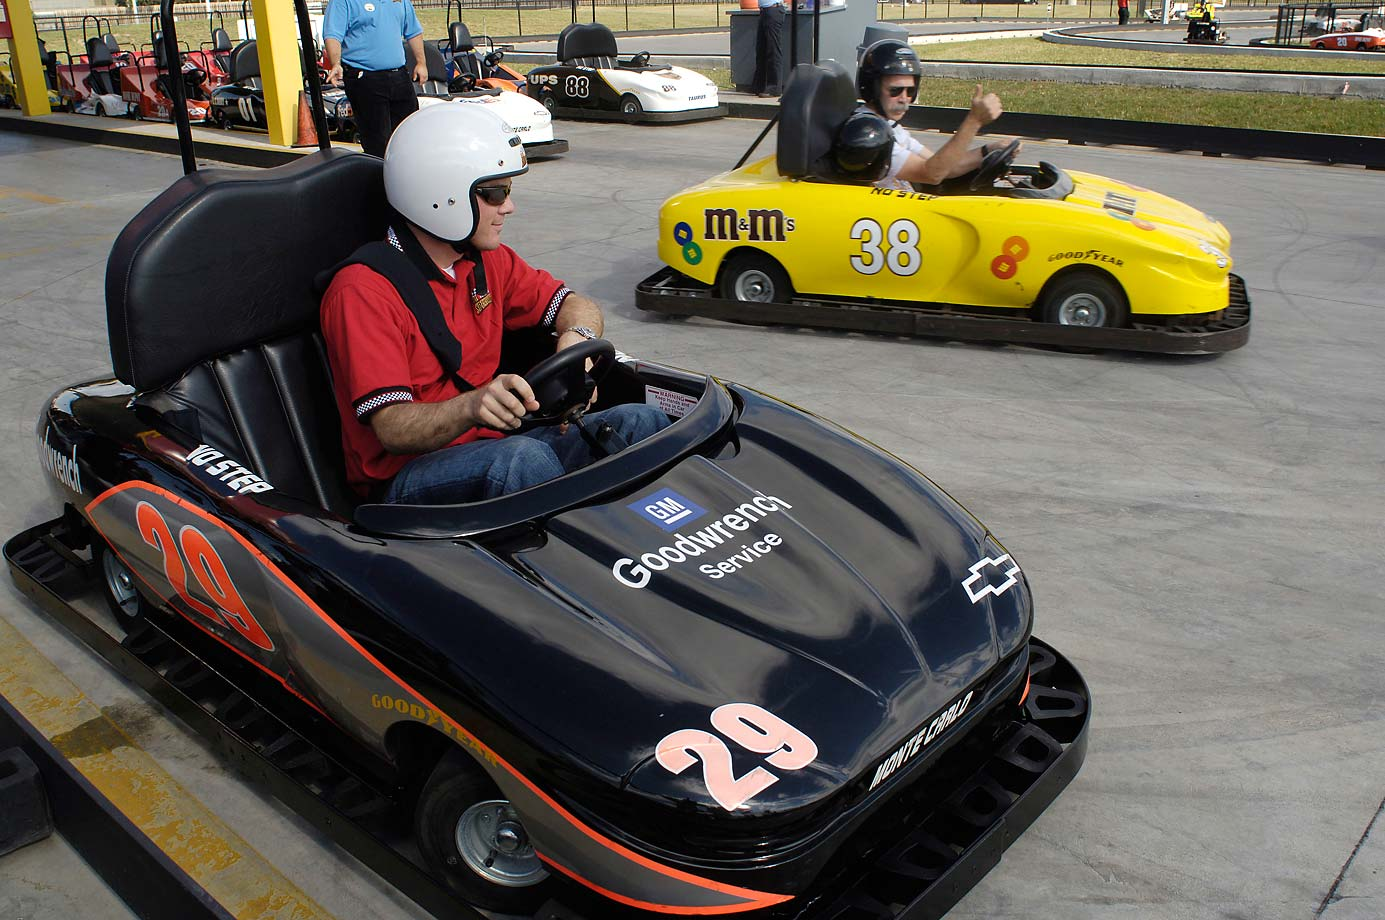 During his 2001 NASCAR rookie of the year season, Kevin Harvick gets the thumbs up from a fellow racer as he pulls on to the track at the NASCAR store. Harvick was on hand to sign autographs, race go-carts and to meet a lucky girl from the Make a Wish Foundation.